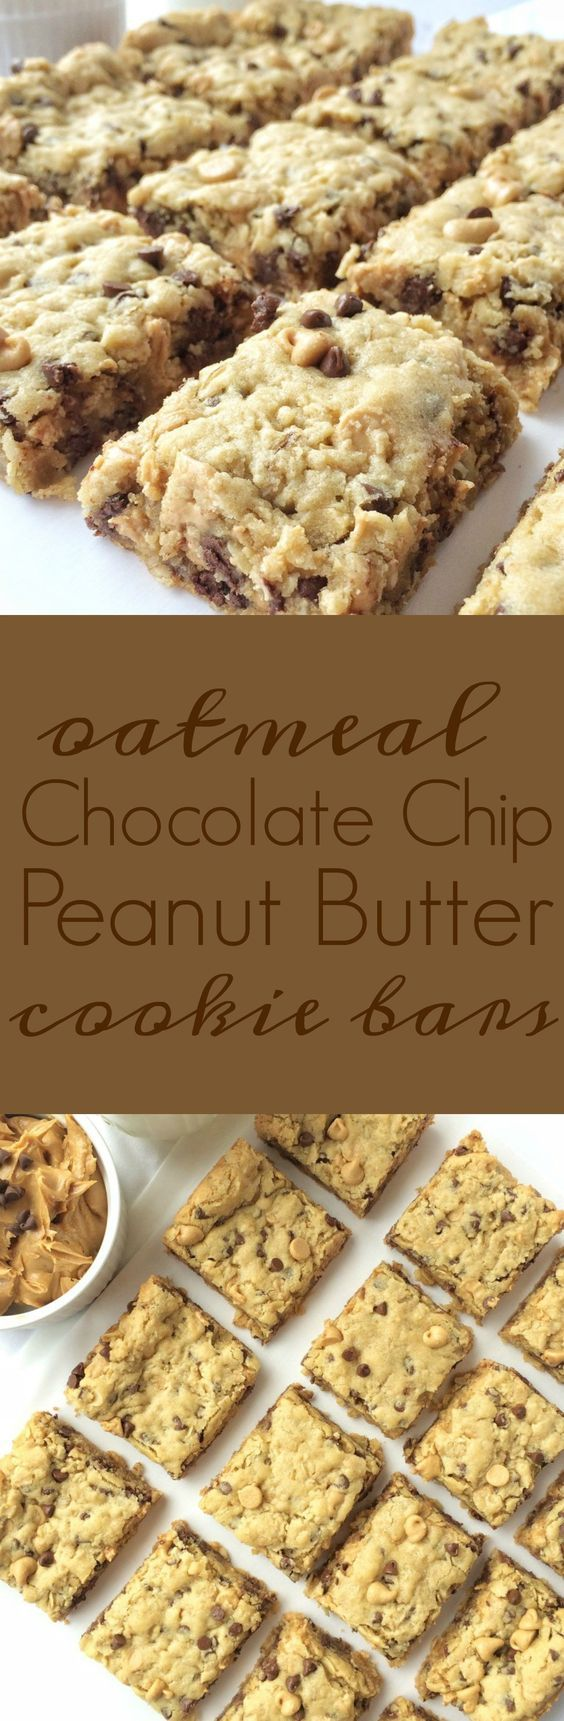 http://bestkitchenequipmentreviews.com/pressure-cooker/ Oatmeal Chocolate Chip Peanut Butter Bars